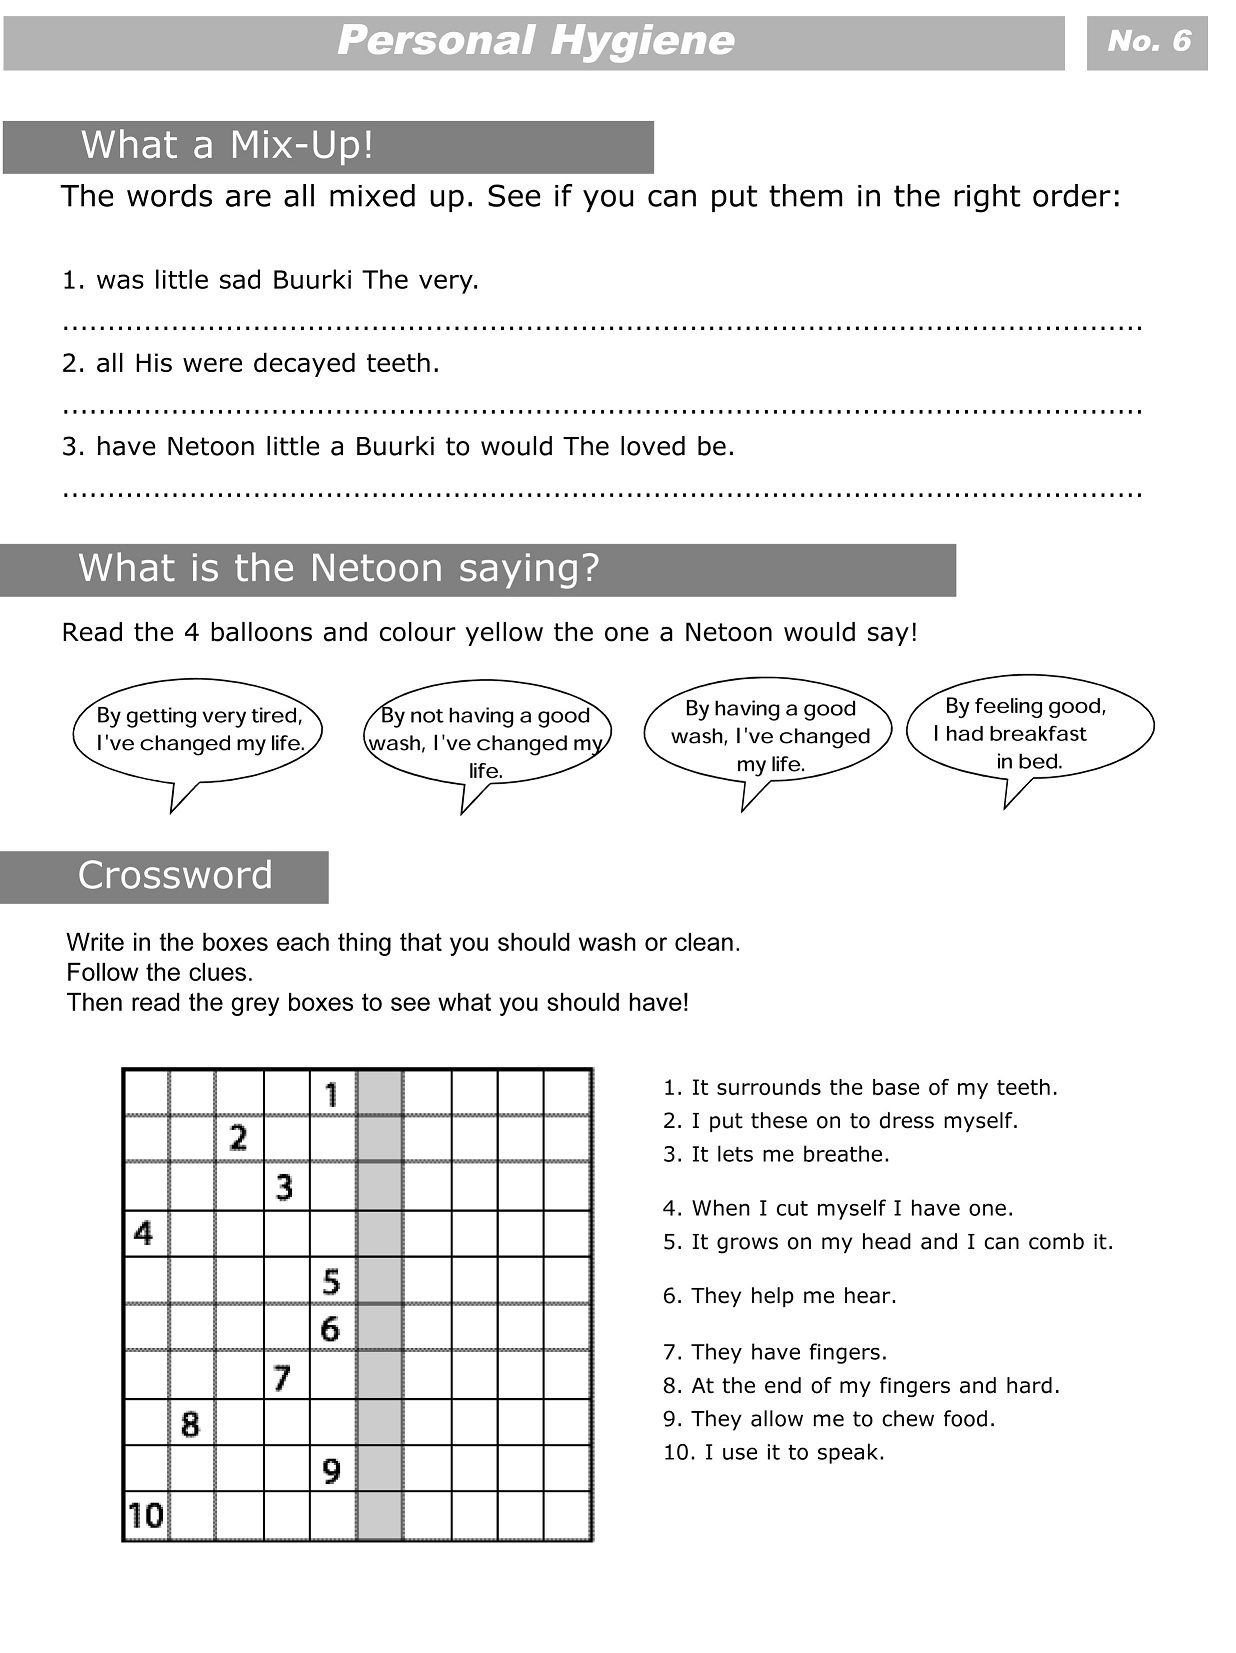 Math Worksheet  Worksheet For Multiplication Grade Fun Math Practice in addition Life Skills Grade 6 Term 2 2017 Test – Teacha moreover Excel Study Skills Worksheets Worksheet Life Skills Worksheets For besides munity living skills worksheets – ellenkultura together with  additionally E Clroom Free Worksheets Grade 5 Term 1 Development Of Self further Life Skills Grade 6 Lesson Plans   Reading  prehension Exercises besides personal hygiene worksheets for kids level 3 6   Biology   Personal besides  moreover  besides  together with Lifeskills Lesson Plan Life Skills Lesson Plans Life Skills Lesson further 9 Best Education images   Math  worksheets  Life skills besides life skills grade 5 worksheets – newstalk info likewise Free Grades 9   12 Life Skills Worksheets   Teachers Pay Teachers also Life Skills Worksheets   Movedar. on life skills grade 6 worksheets